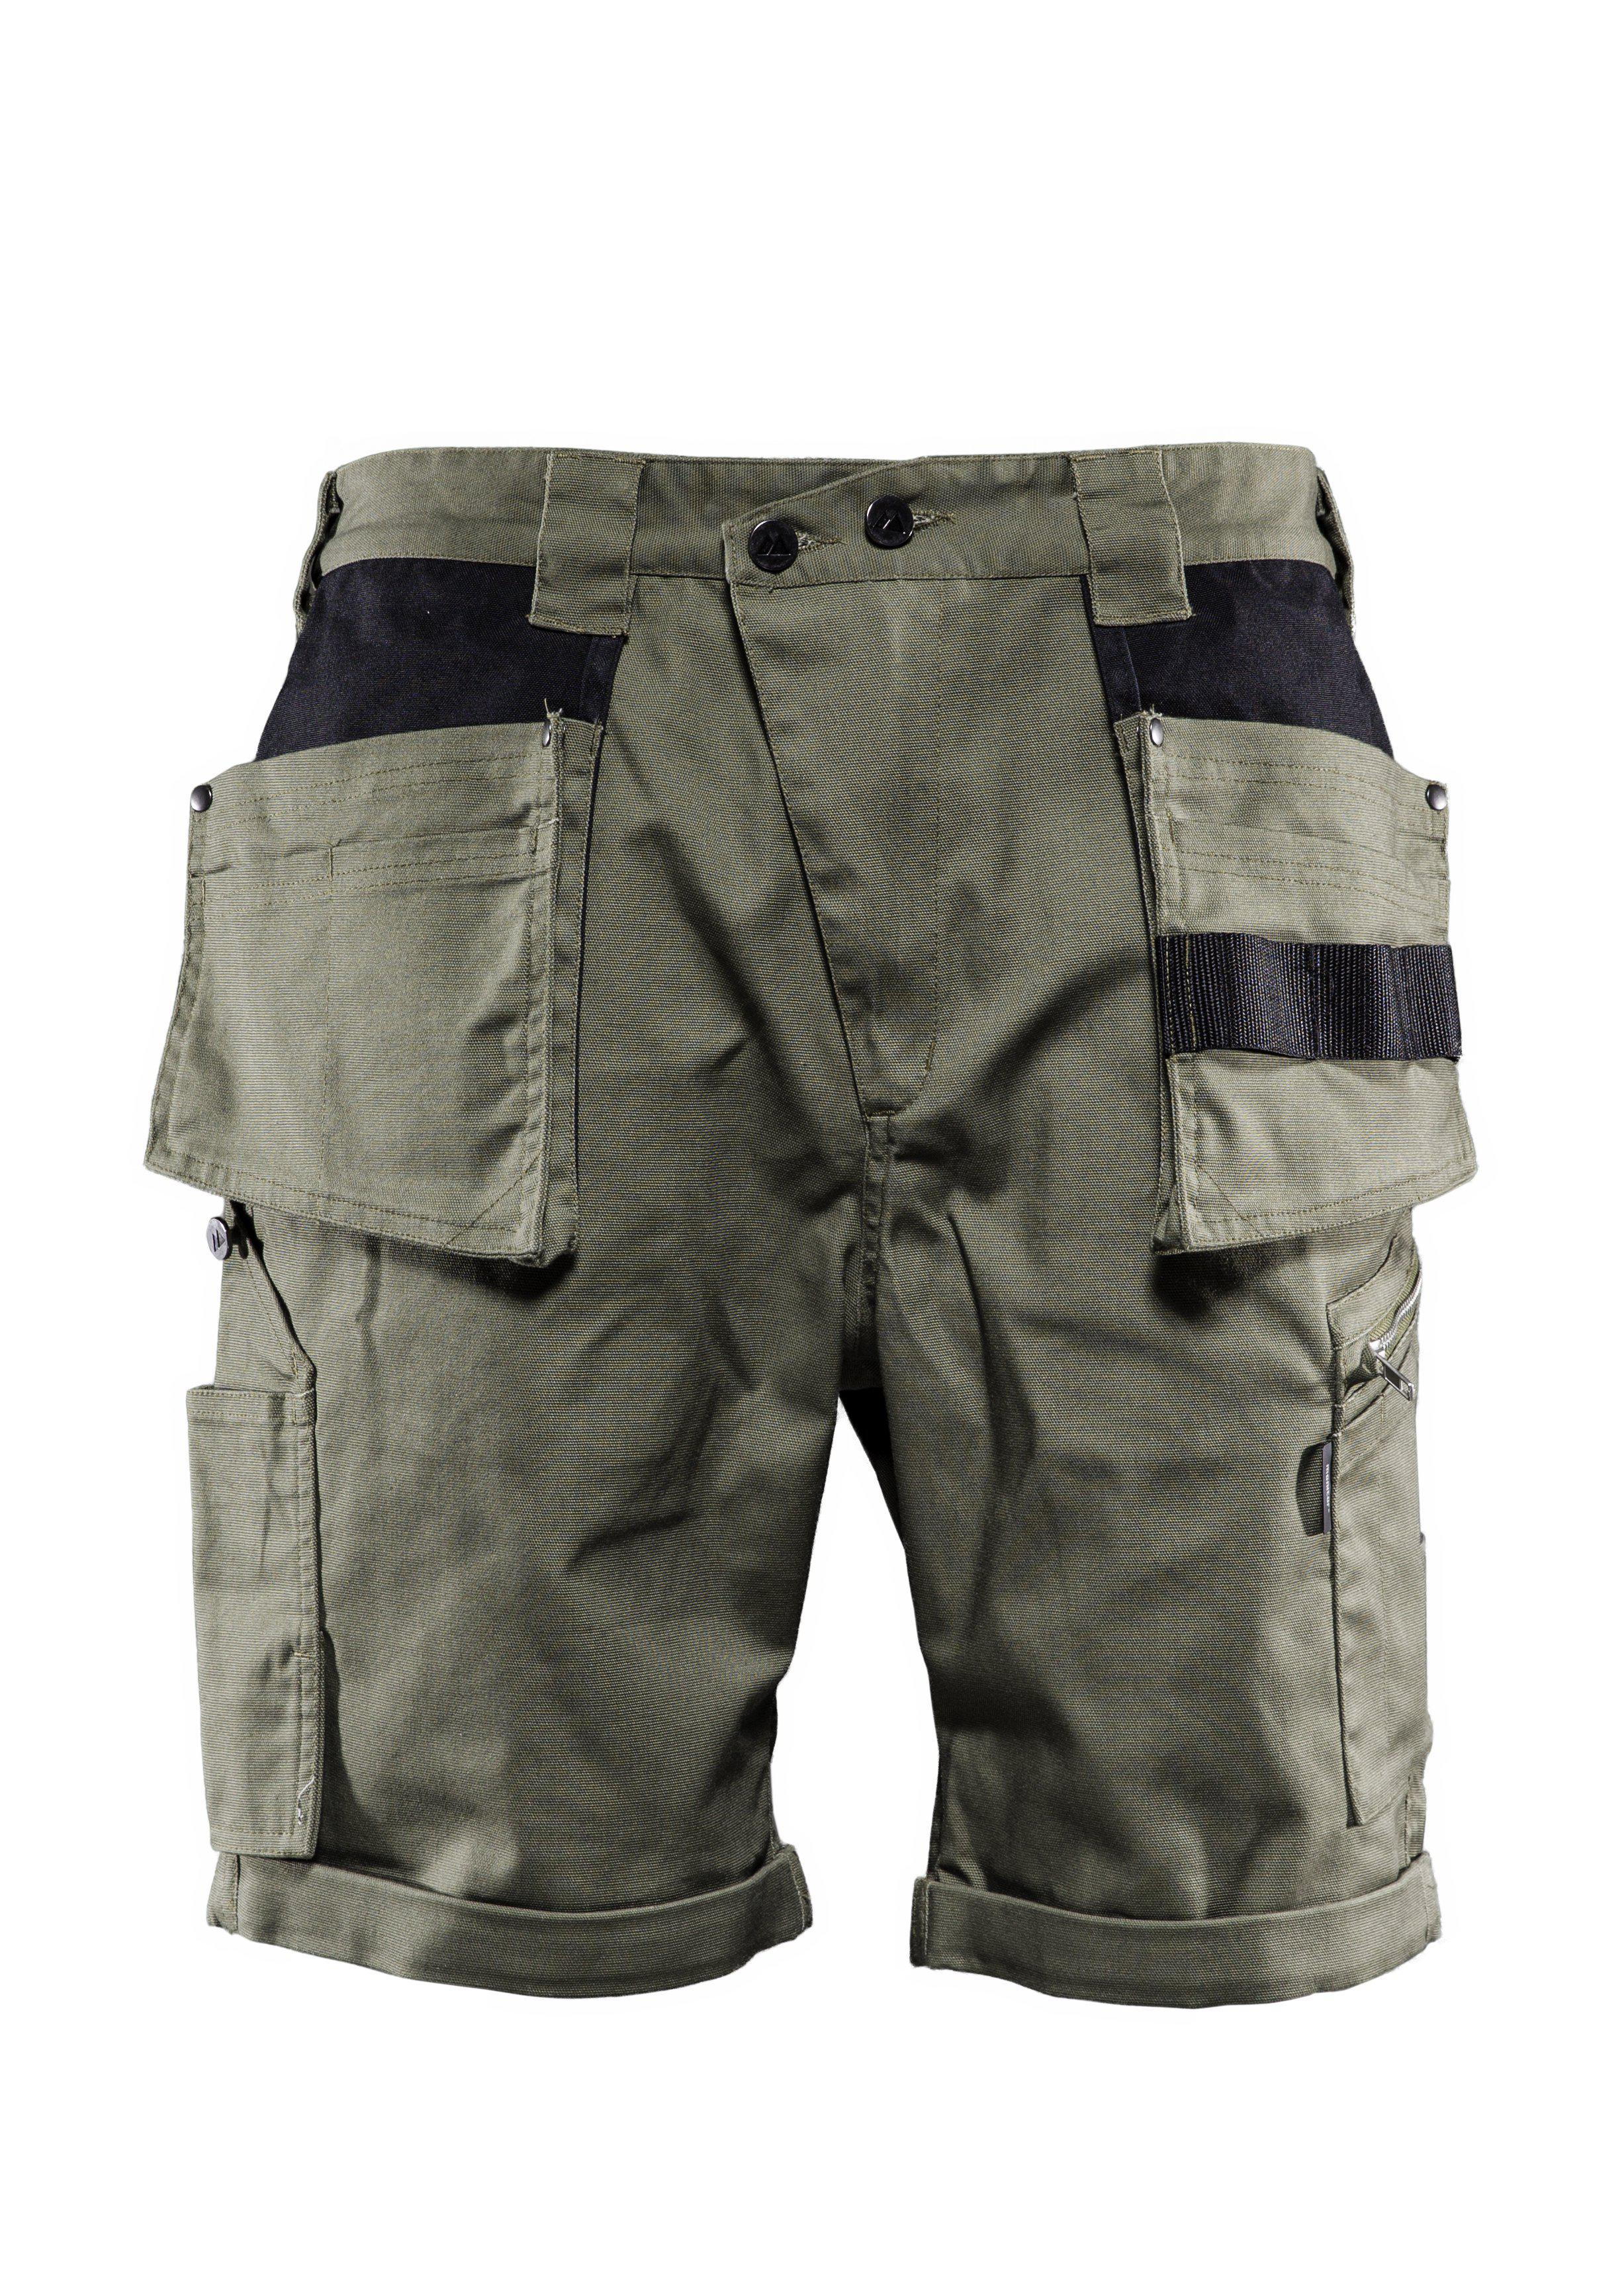 Versatile shorts, Carpenter shorts, Burnt olive green, XS